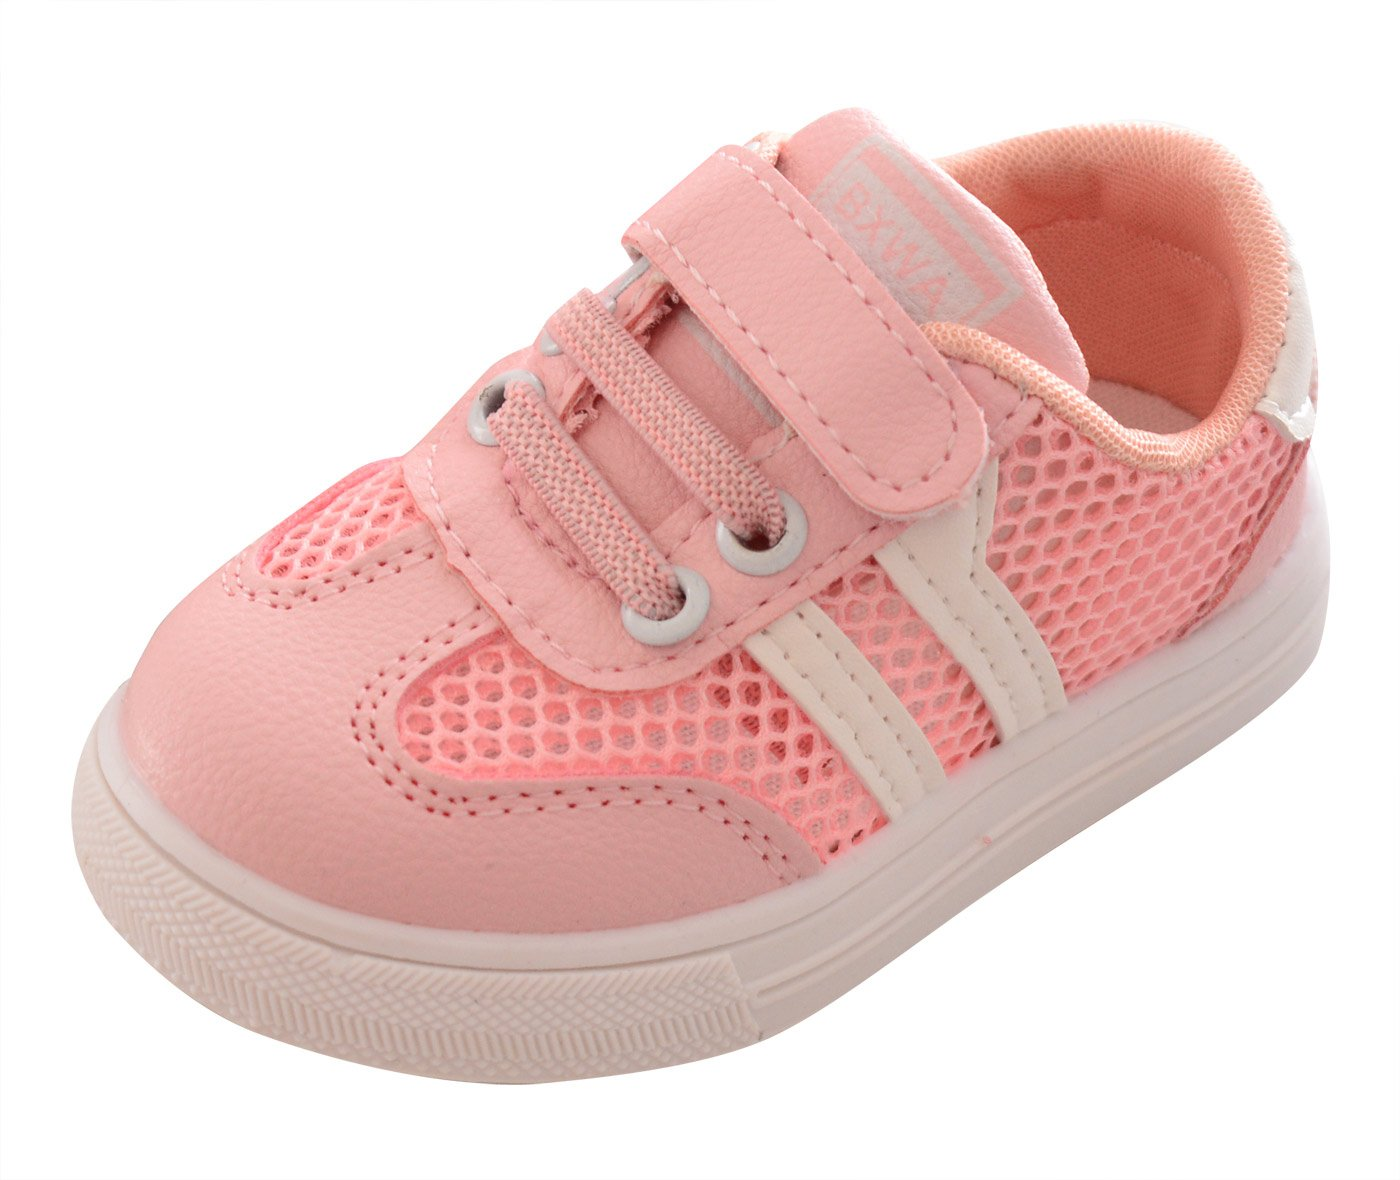 Happy Cherry Toddler Slip-on Casual Mesh Sneakers Aqua Water Breathable Shoes for Running Pool Beach Pink 7 M